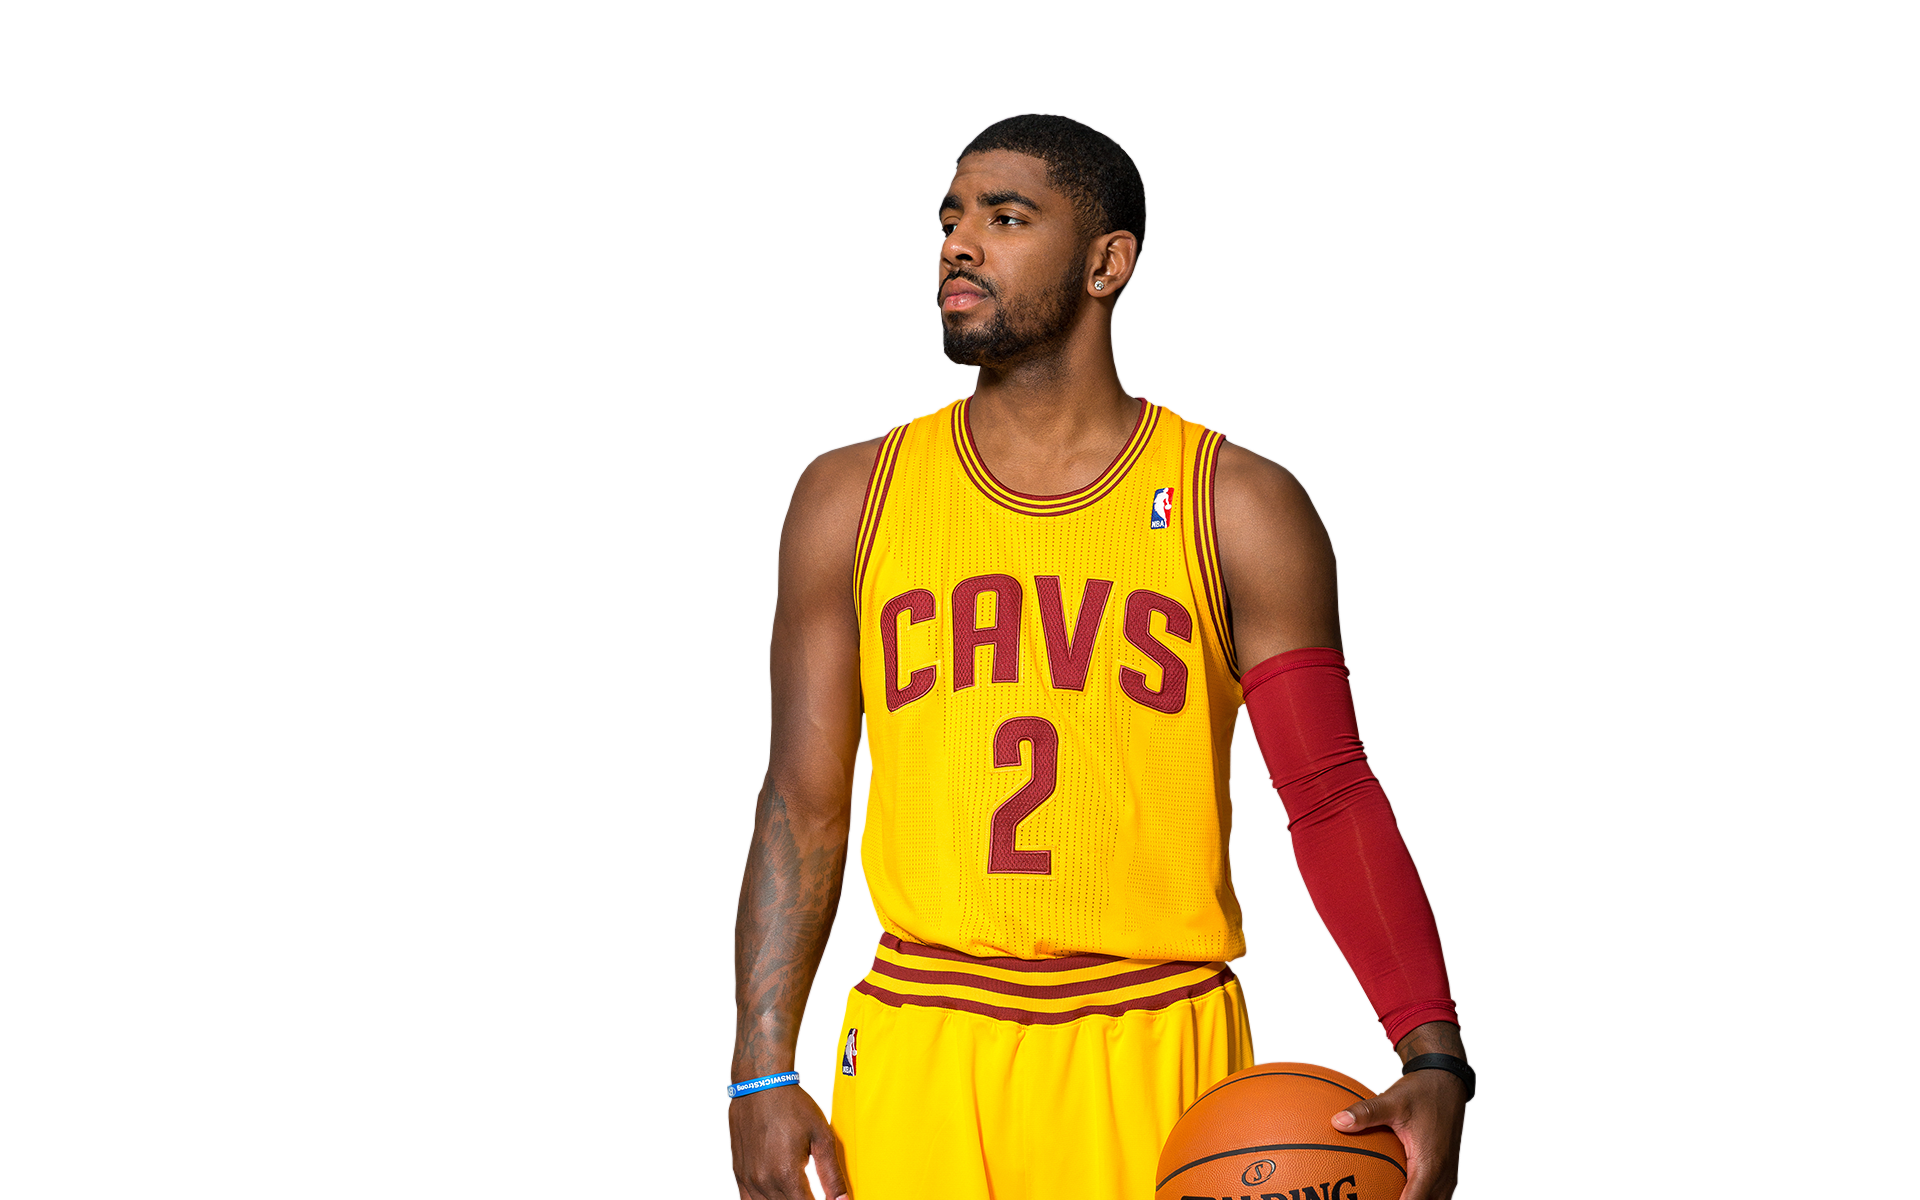 Kyrie Irving Wallpapers Gadget and PC Wallpaper